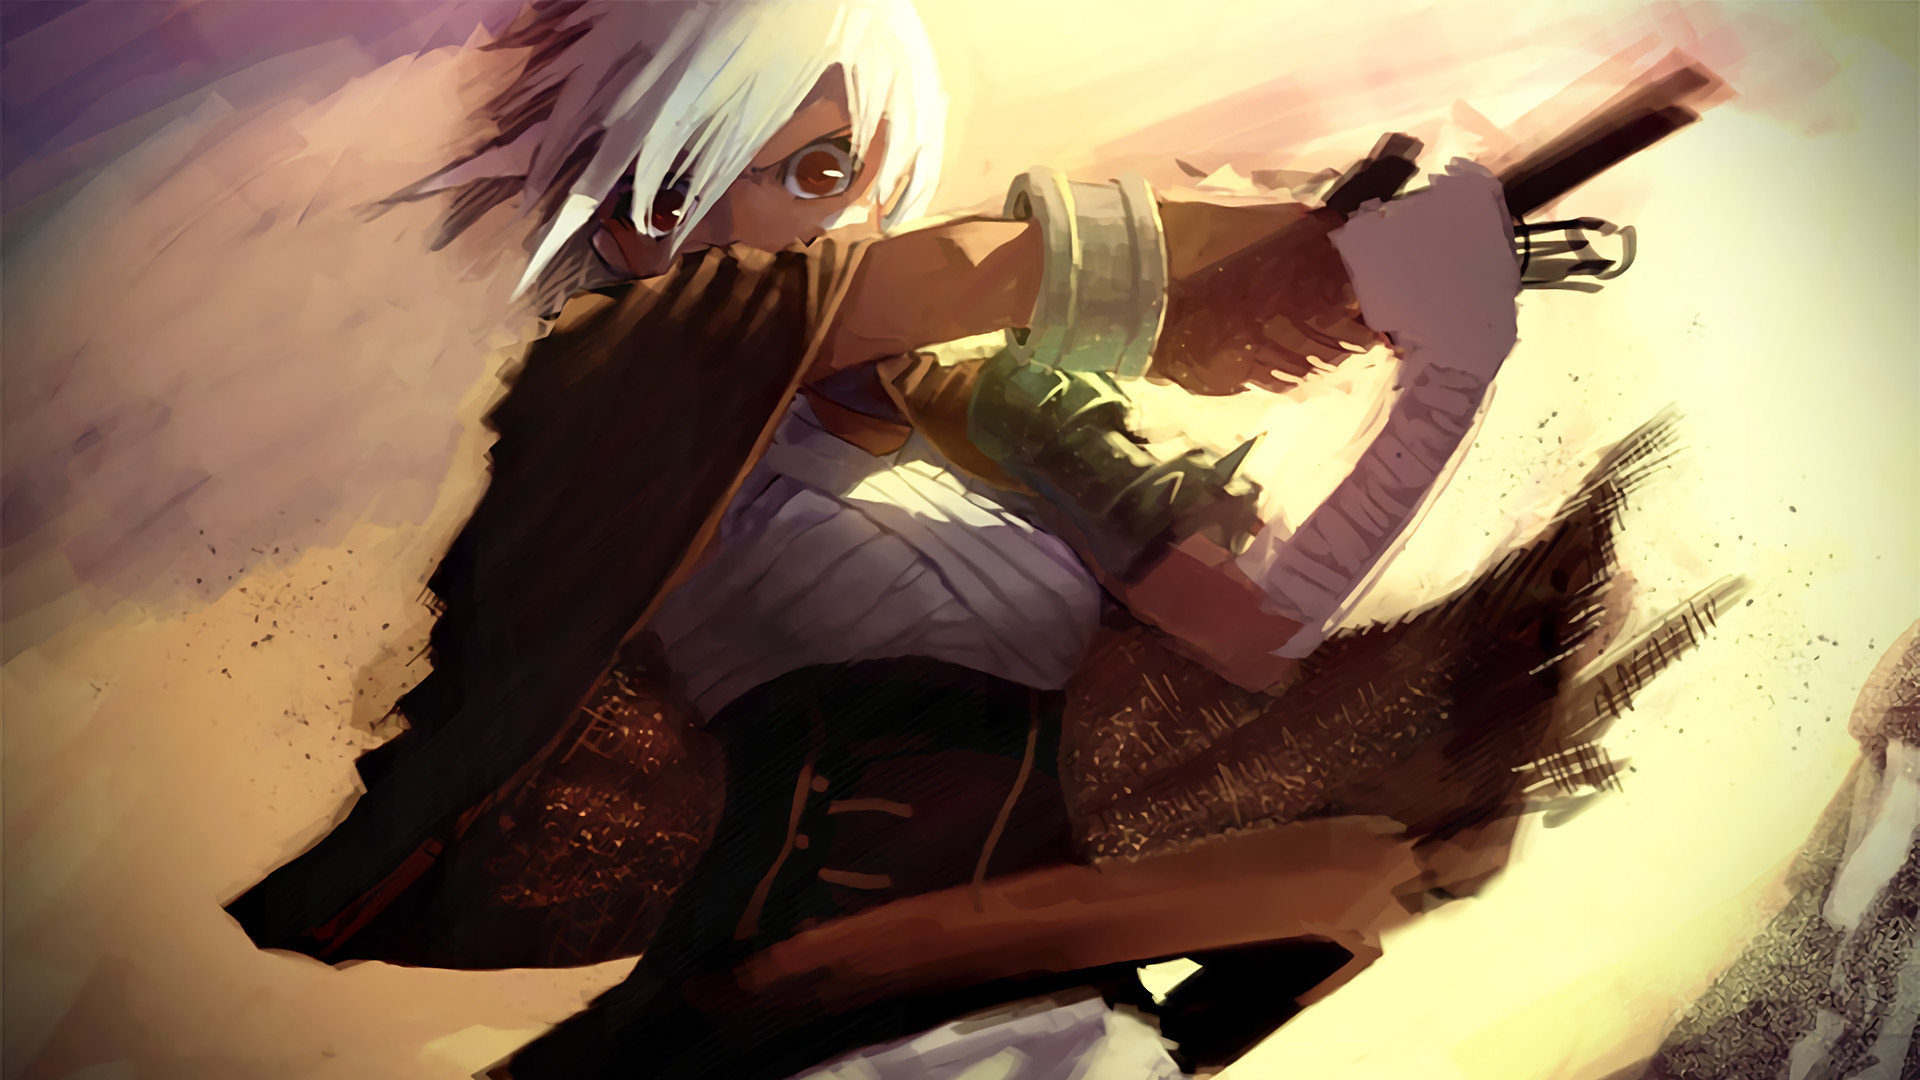 Download Hd 1080p Riven League Of Legends PC Background ID172561 For Free